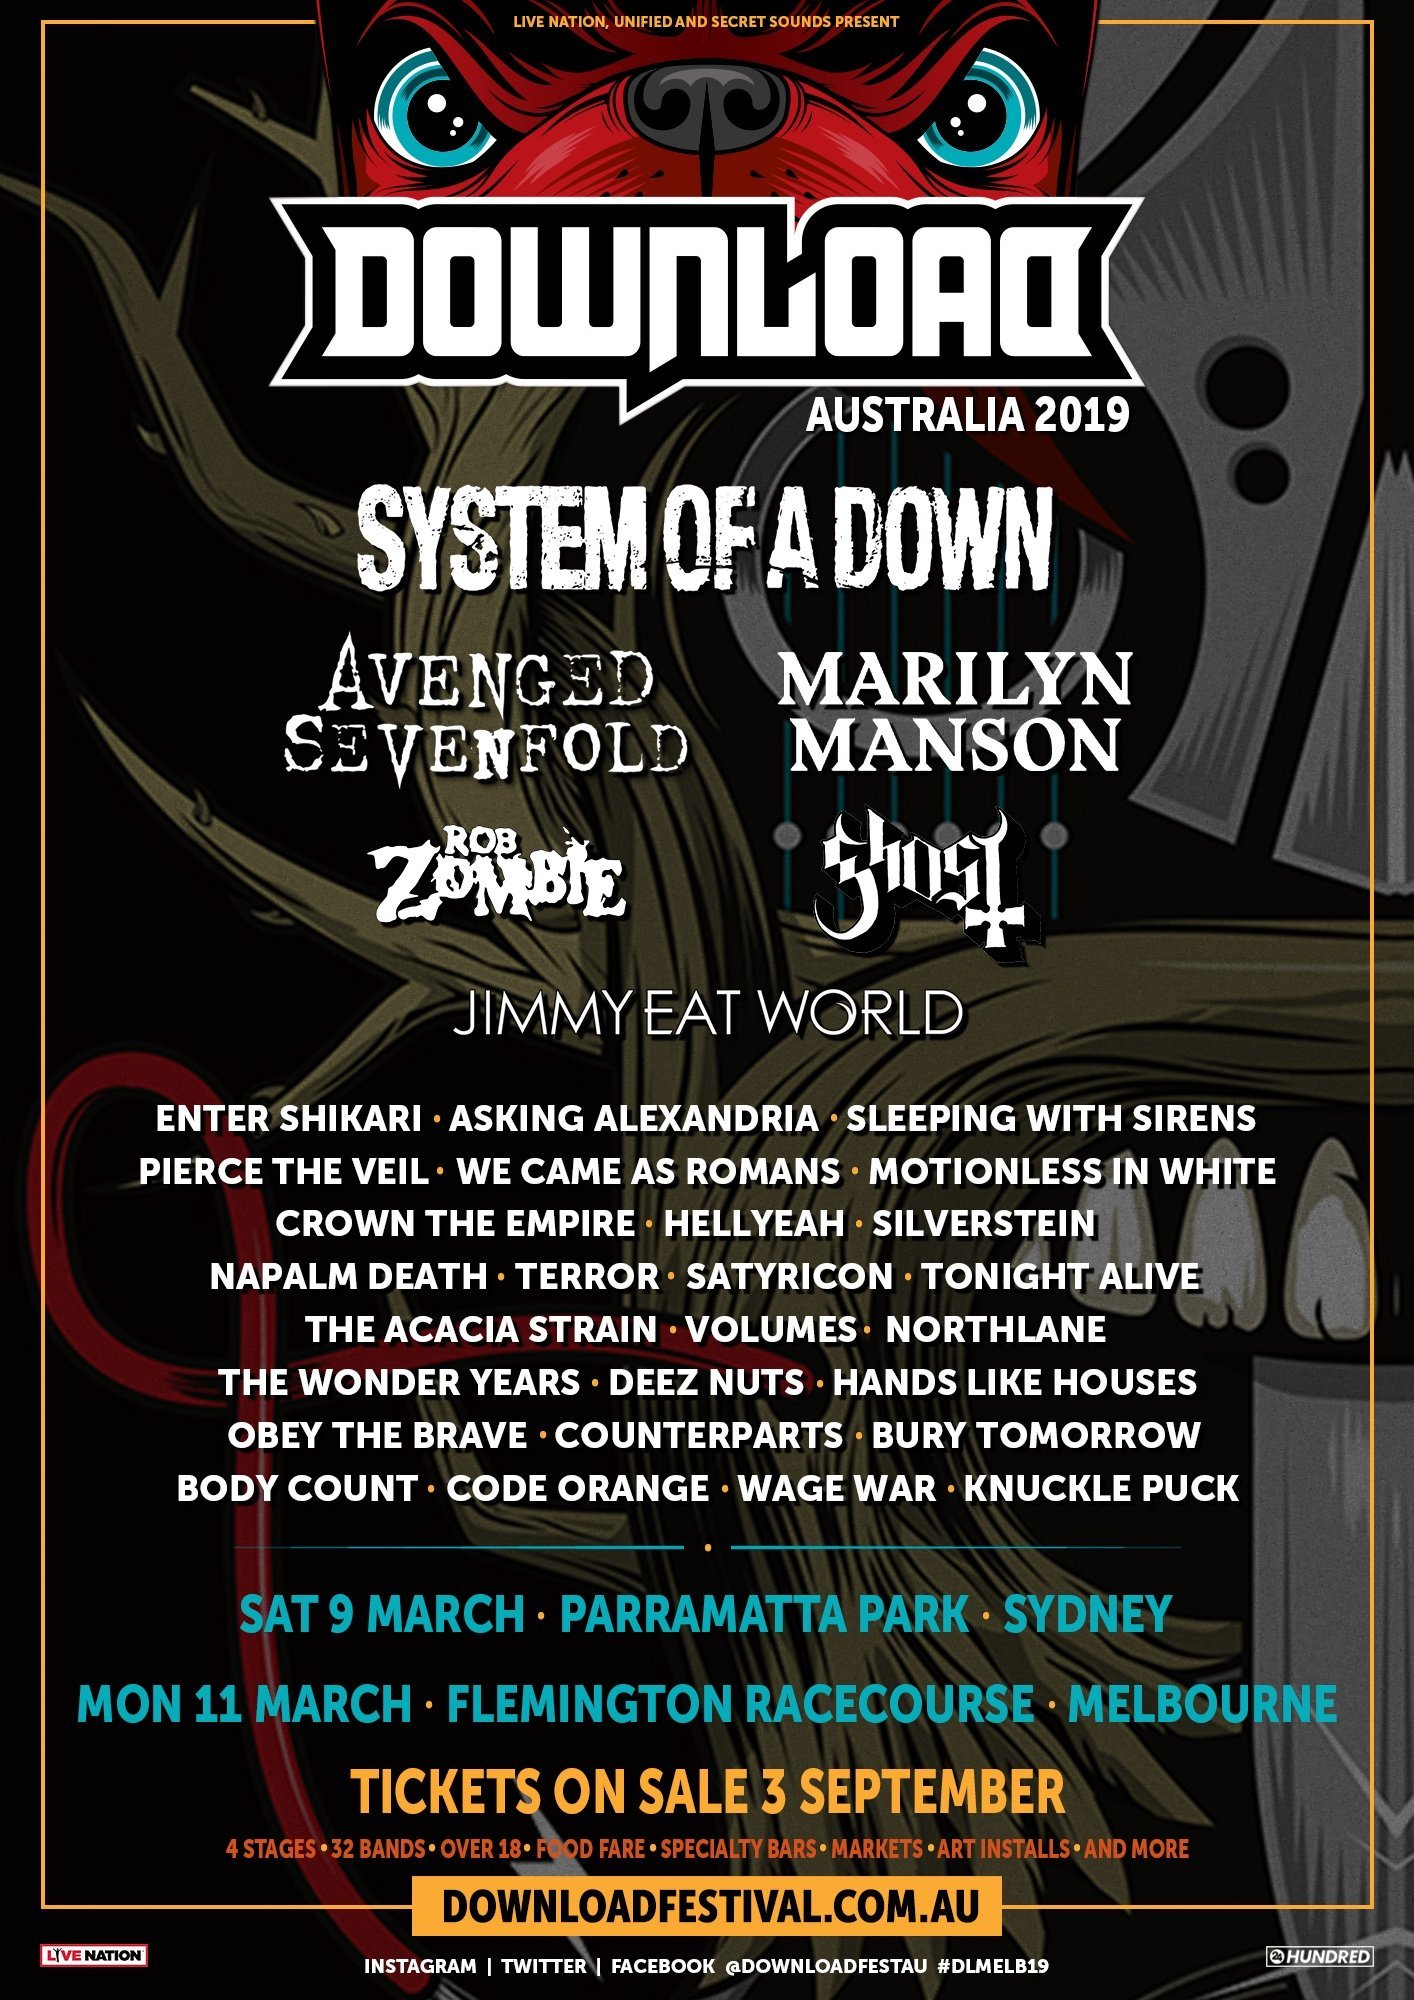 Yep, That Download Festival Australia 2019 Lineup Poster Is Fake - Music  Feeds